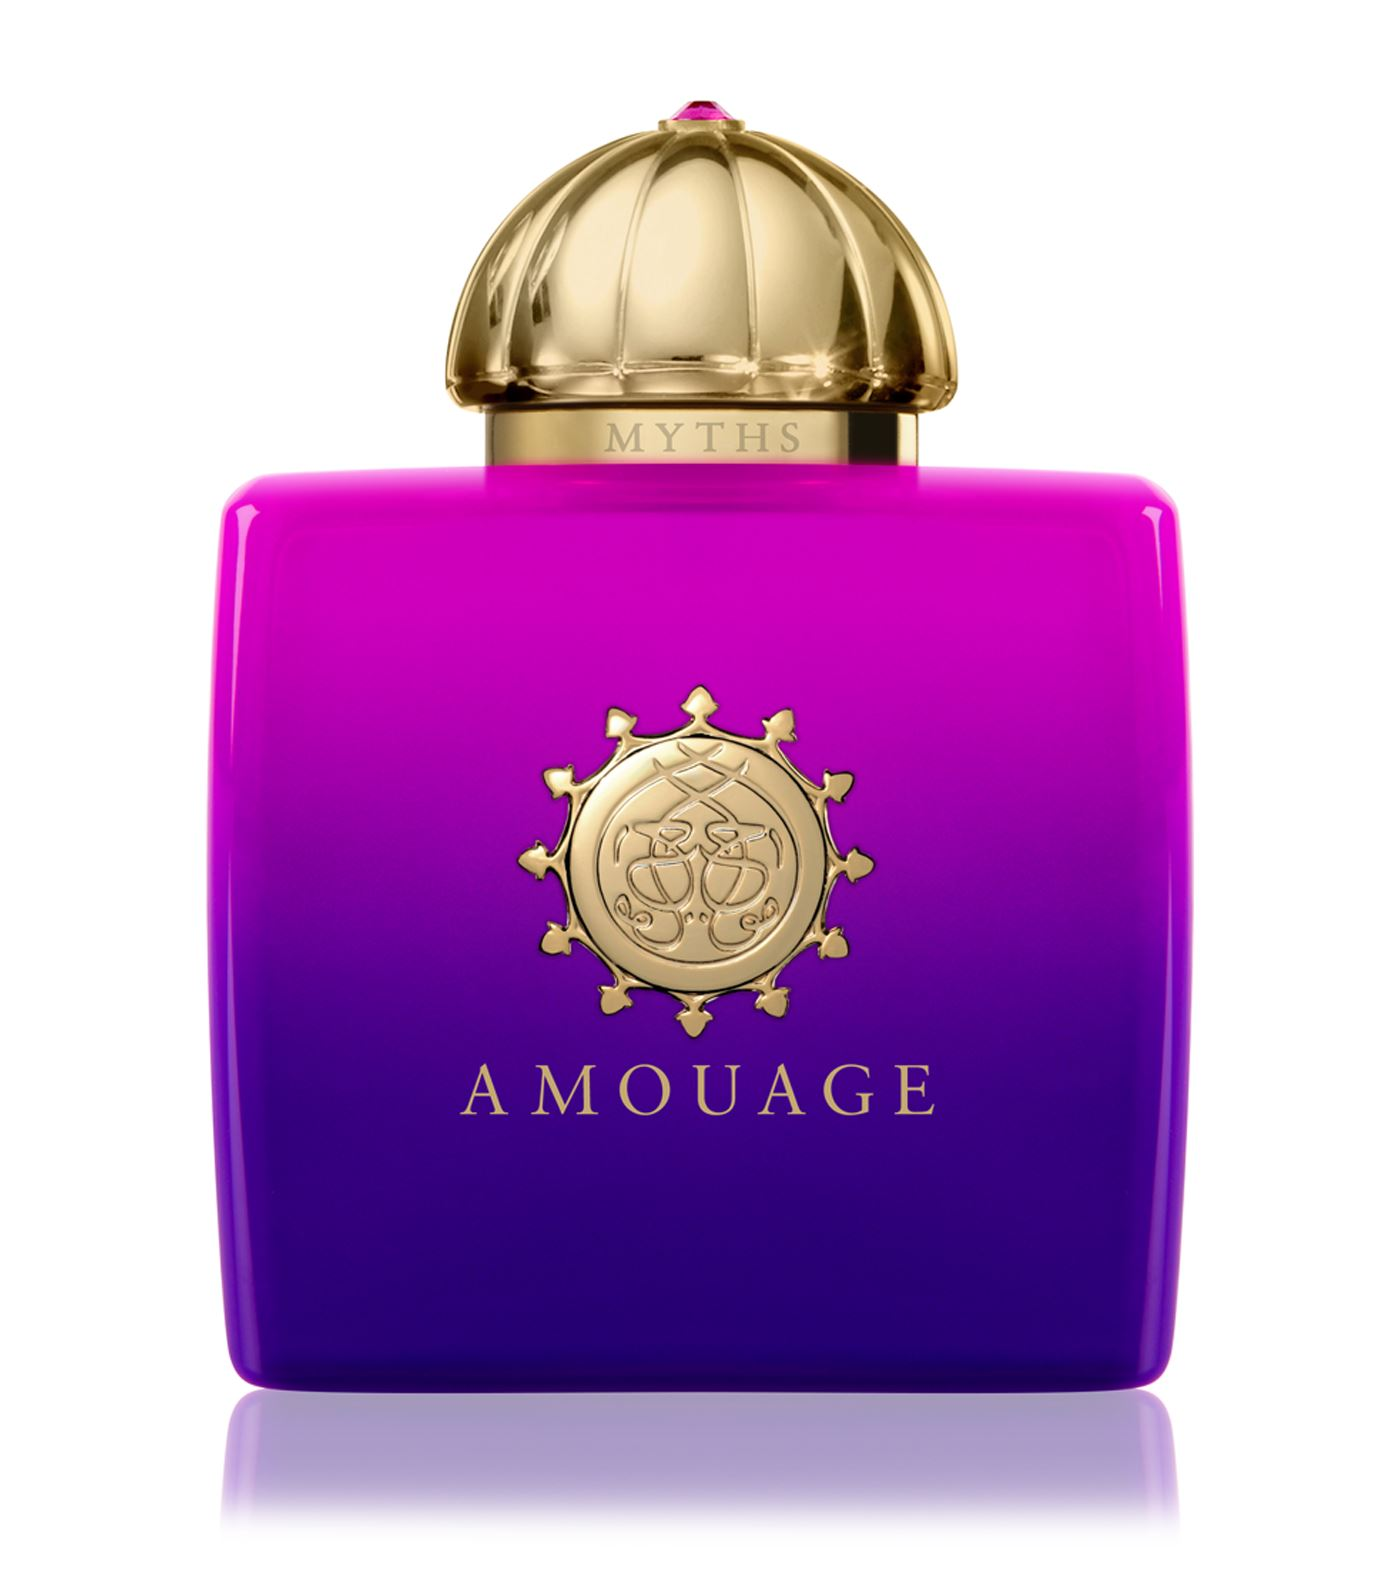 Amouage - Amouage's Myths paints its floral and green facets with an expression of dark nuances shad